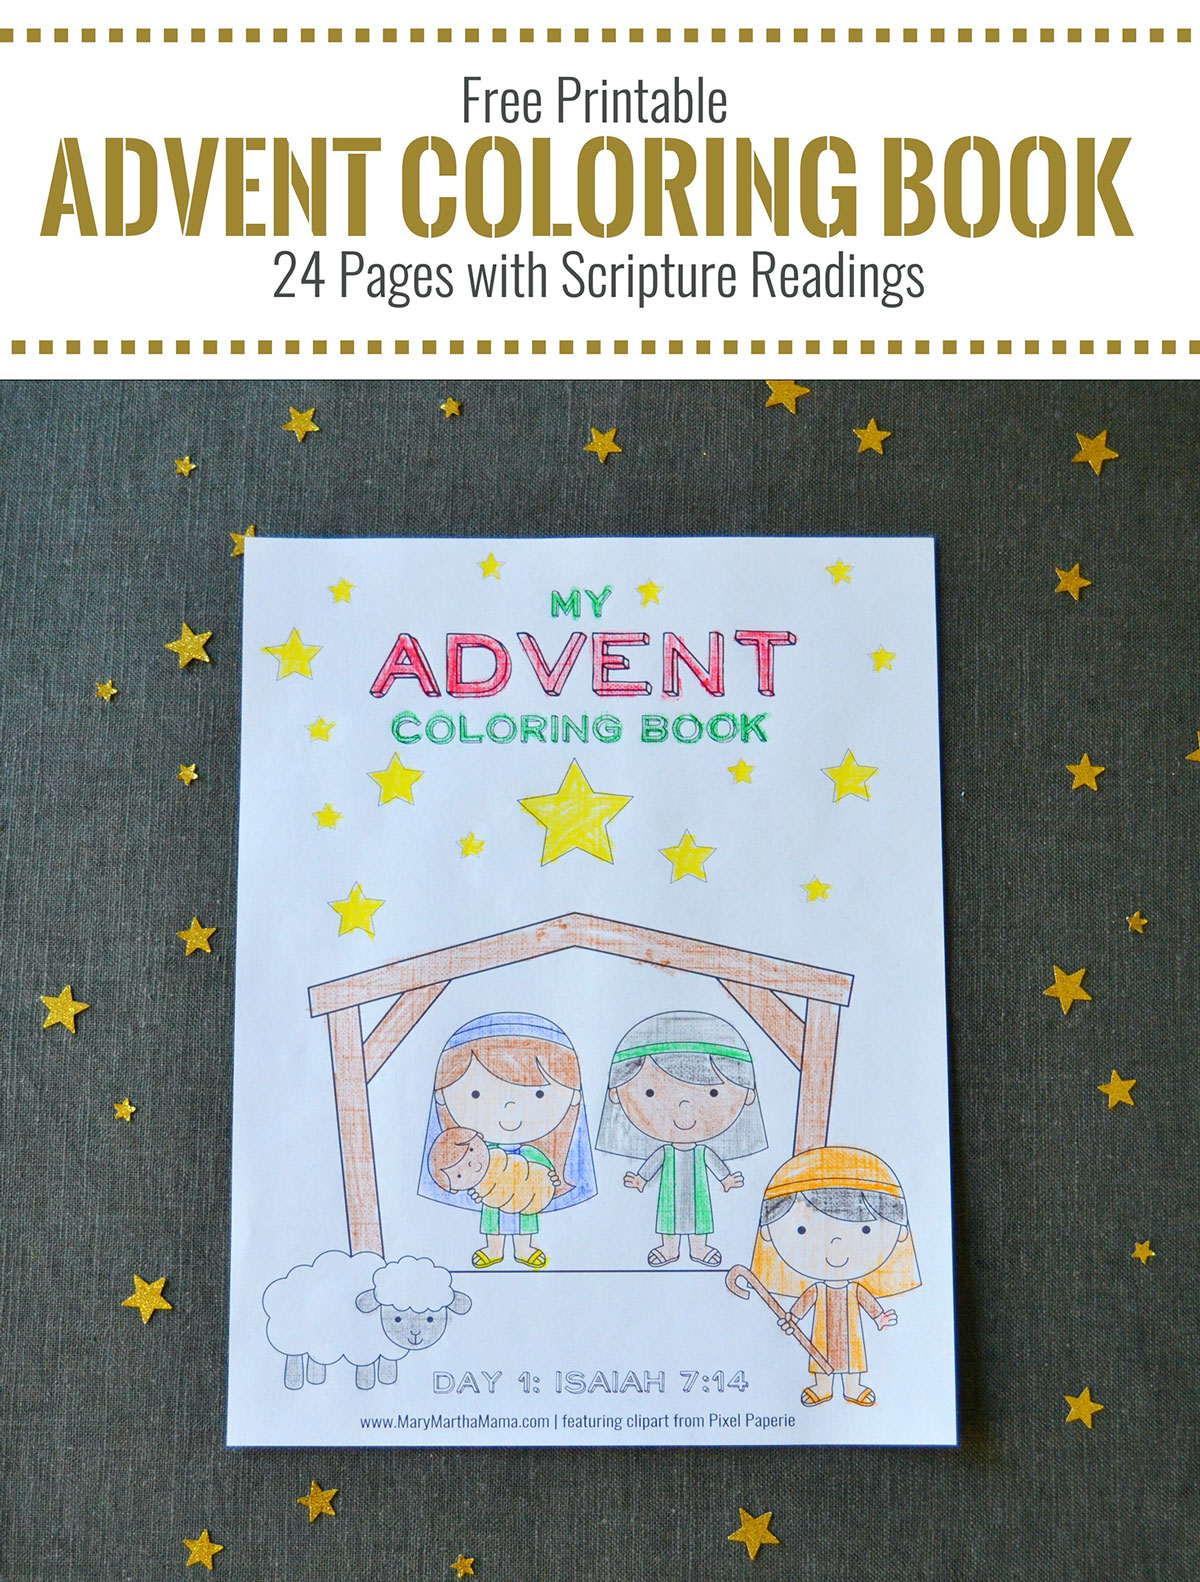 FREE Printable Advent Coloring Book!